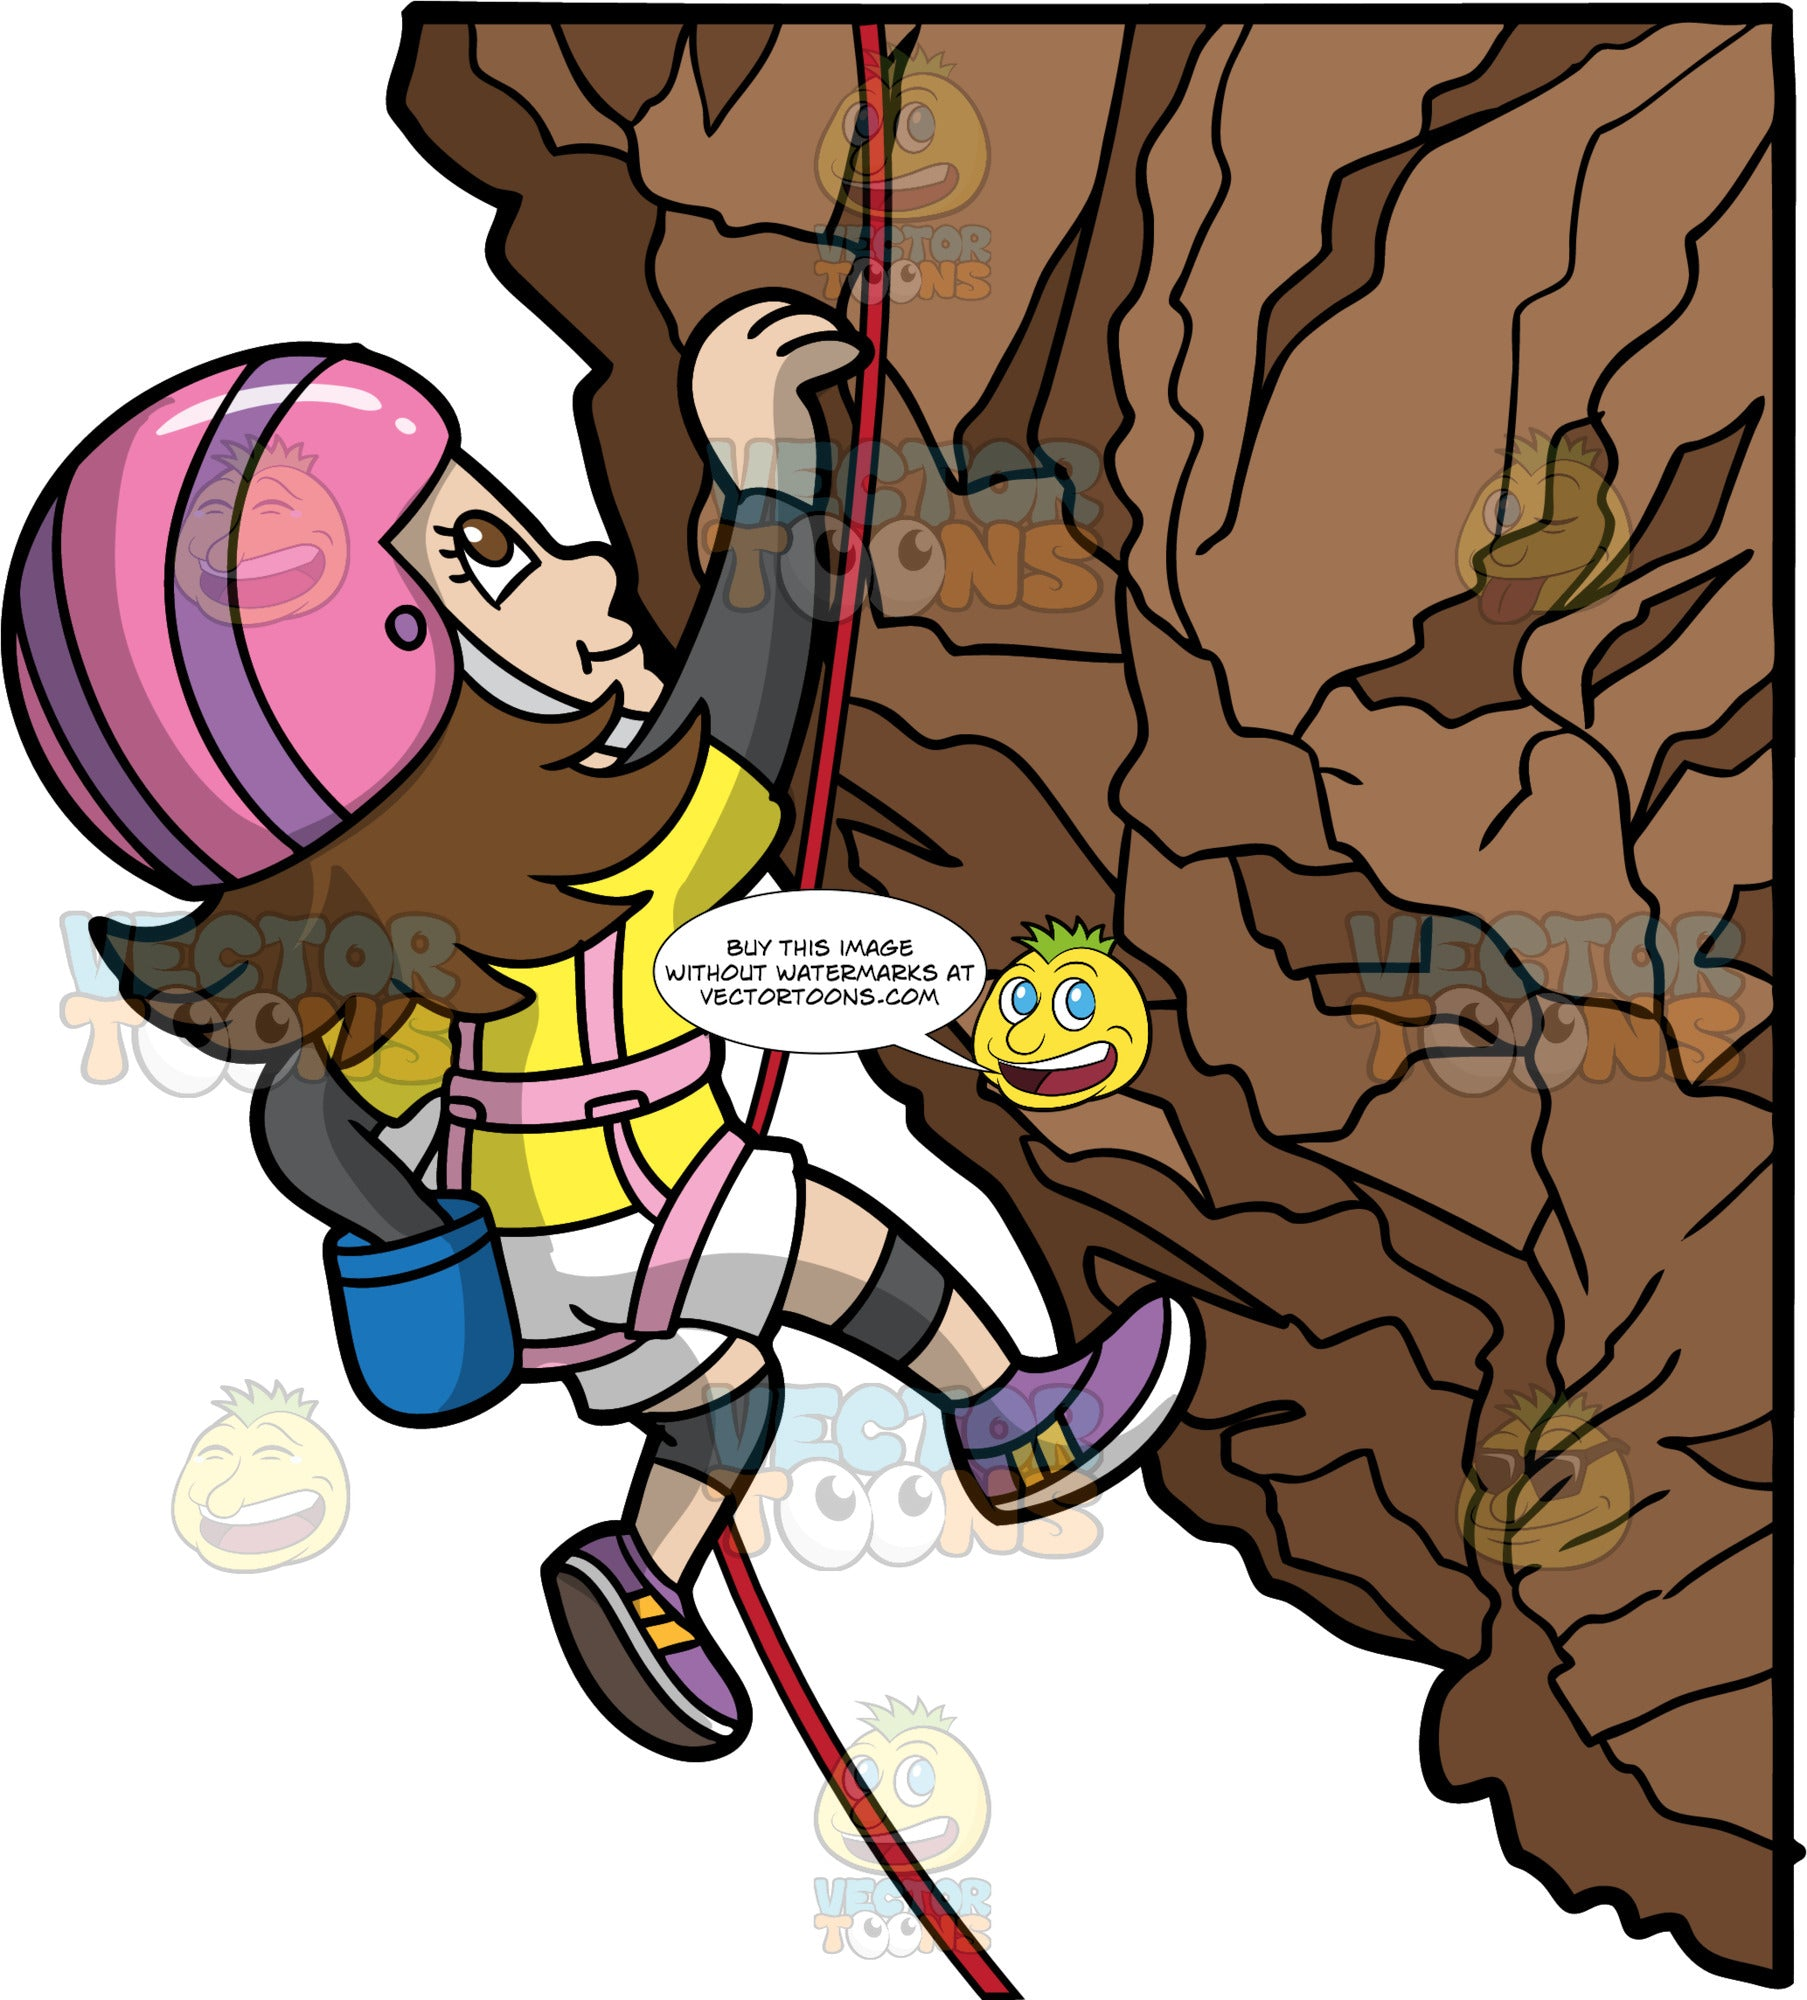 A Girl Rock Climbing Up A Cliff. A girl with brown hair and eyes, wearing white shorts, a yellow shirt, purple rock climbing shoes, a pink harness, and a pink and purple helmet, carefully climbing a cliff